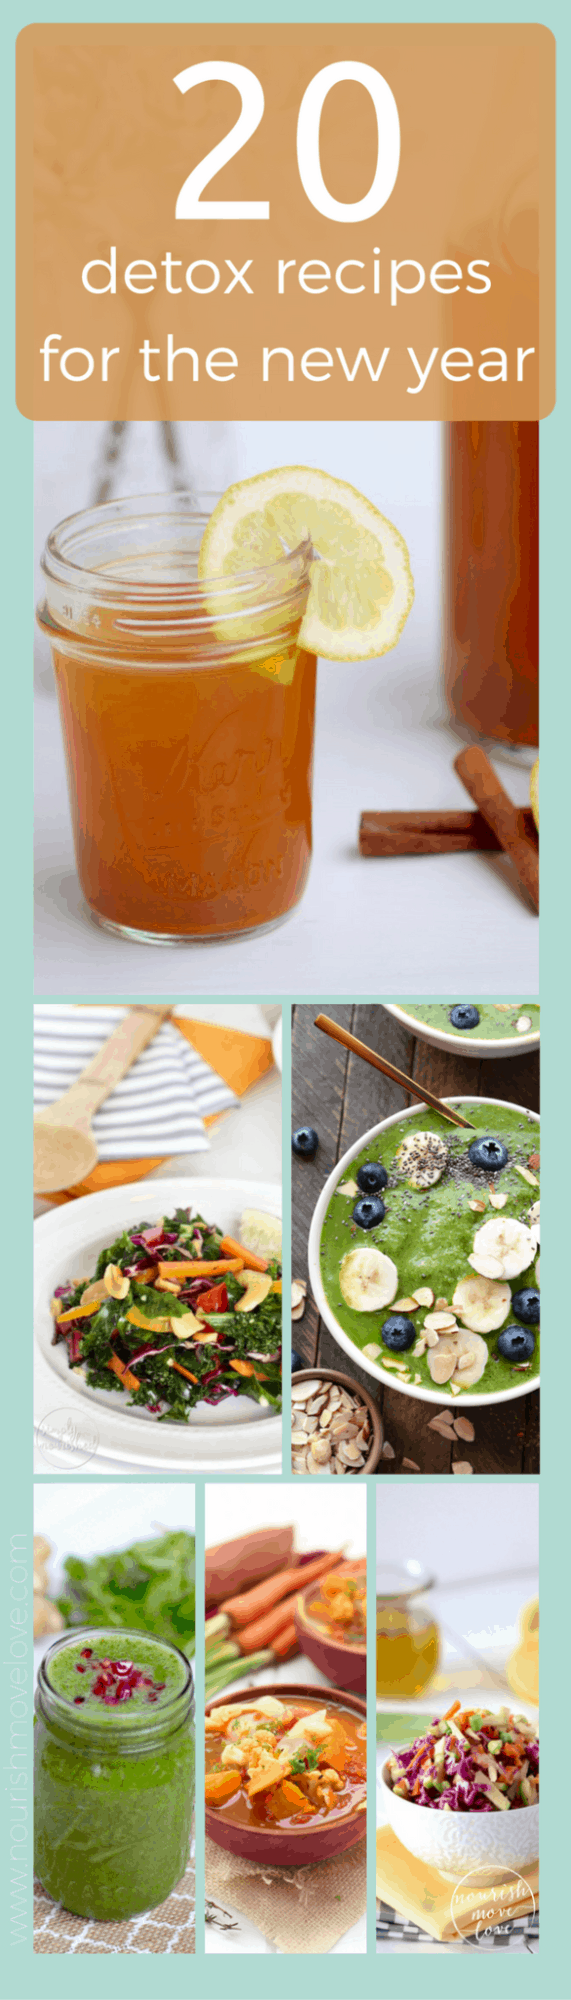 20 detox recipes for the new year | www.nourishmovelove.com